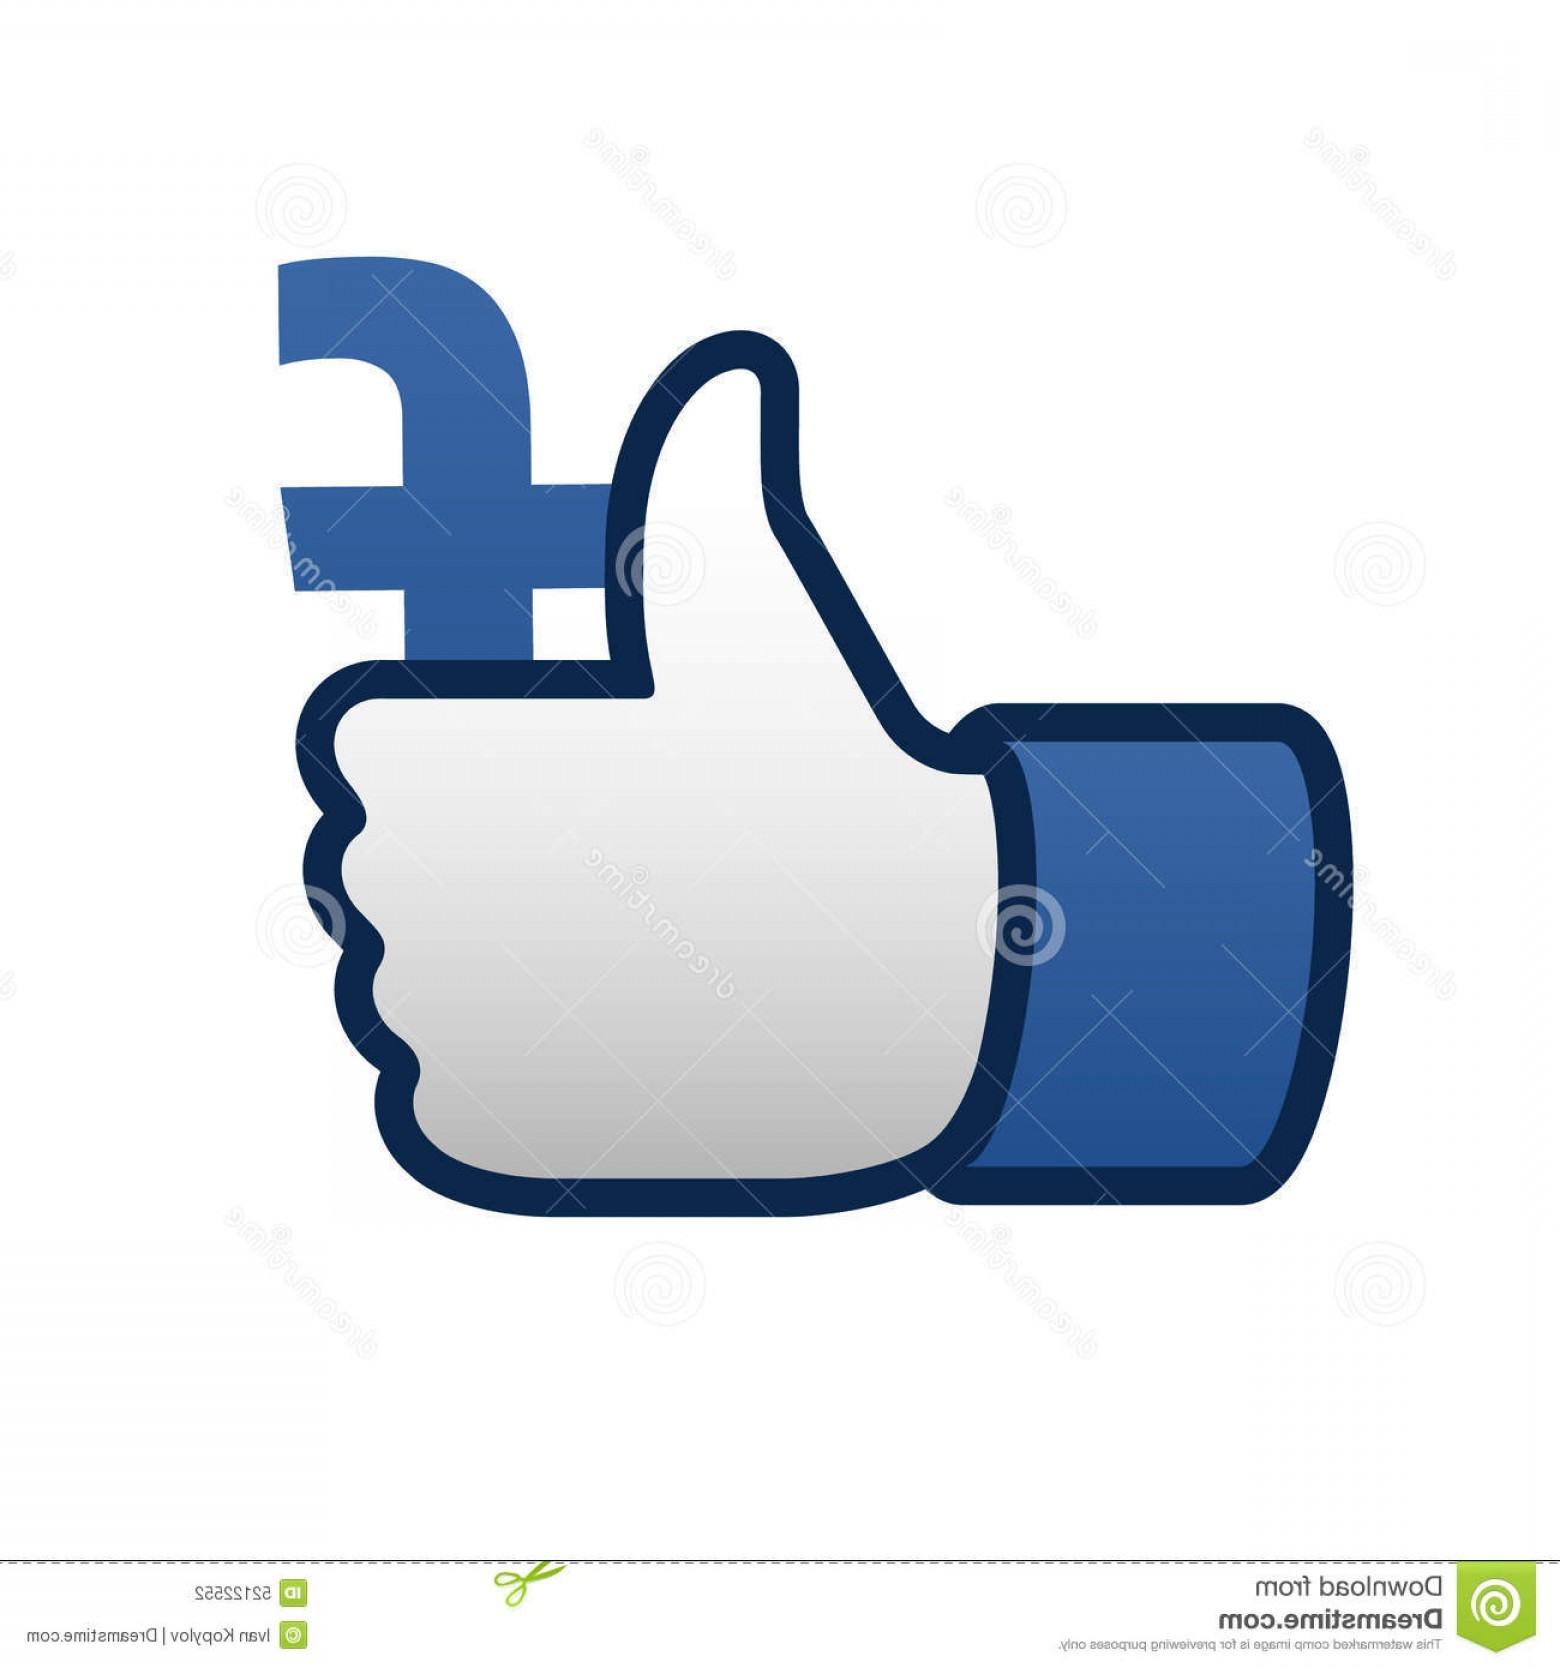 Finger Facebook Vector: Editorial Photography Facebook Like Thumbs Up Symbol Icon Vector Illustration Image